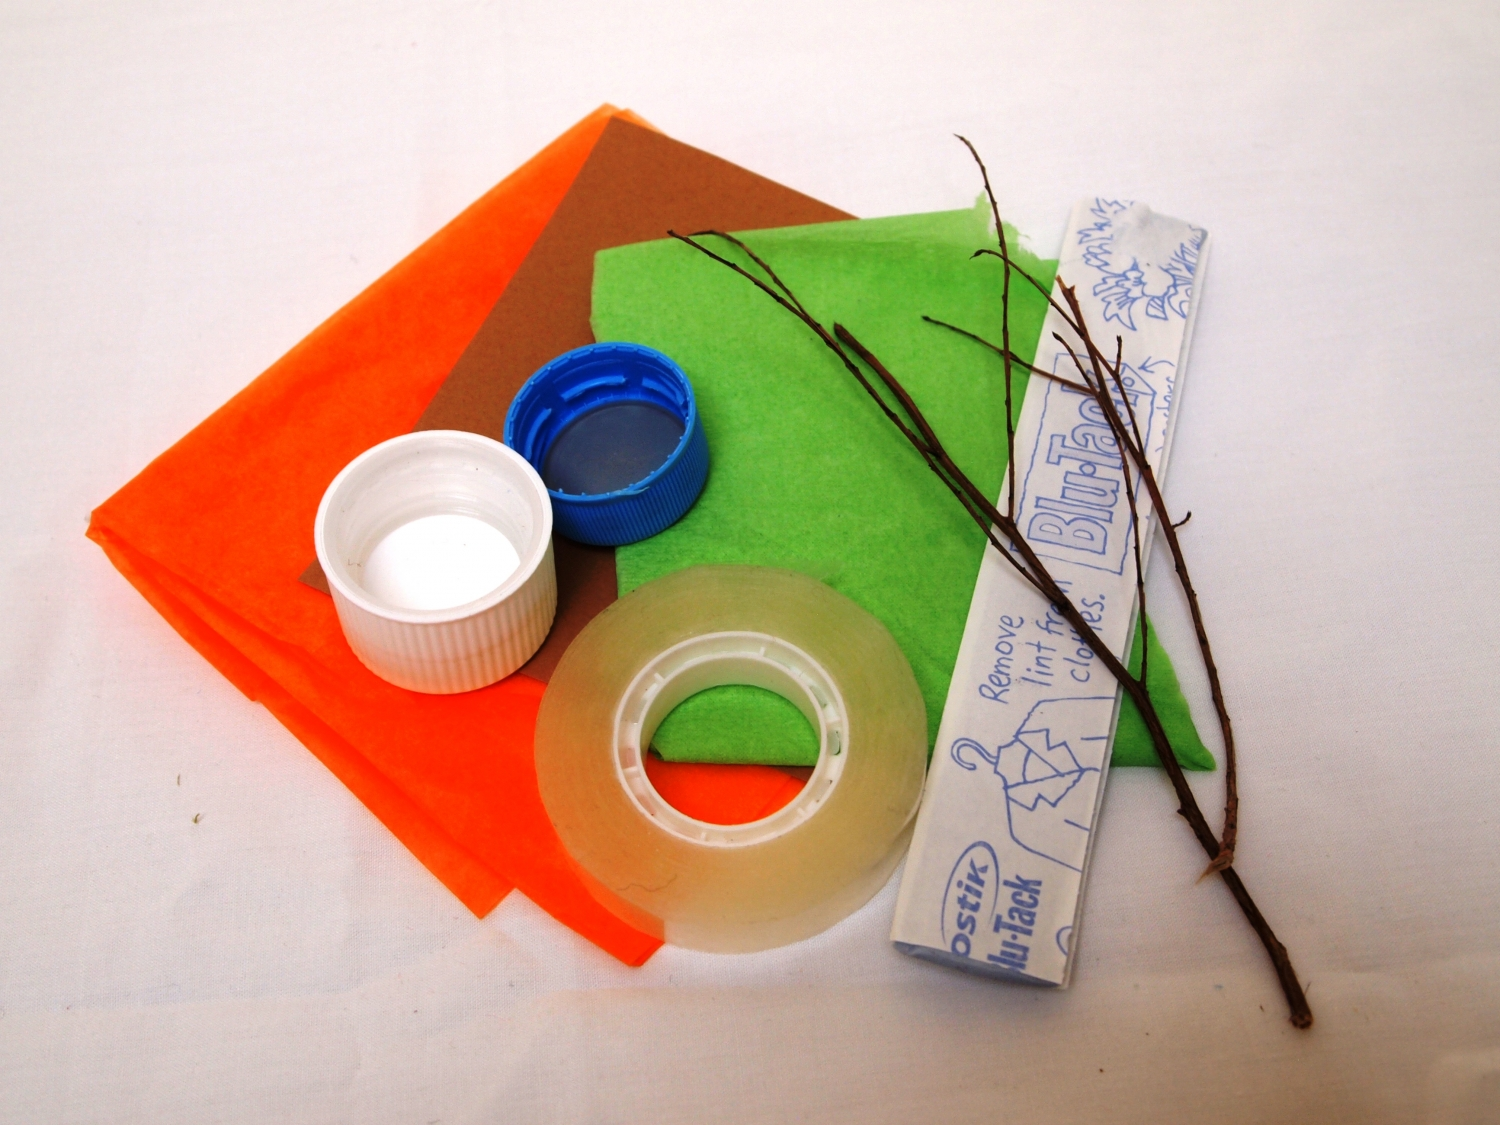 Craft resources: A drink bottle lid, tissue or crepe paper, sticky tape, blu-tac, twigs, scissors.